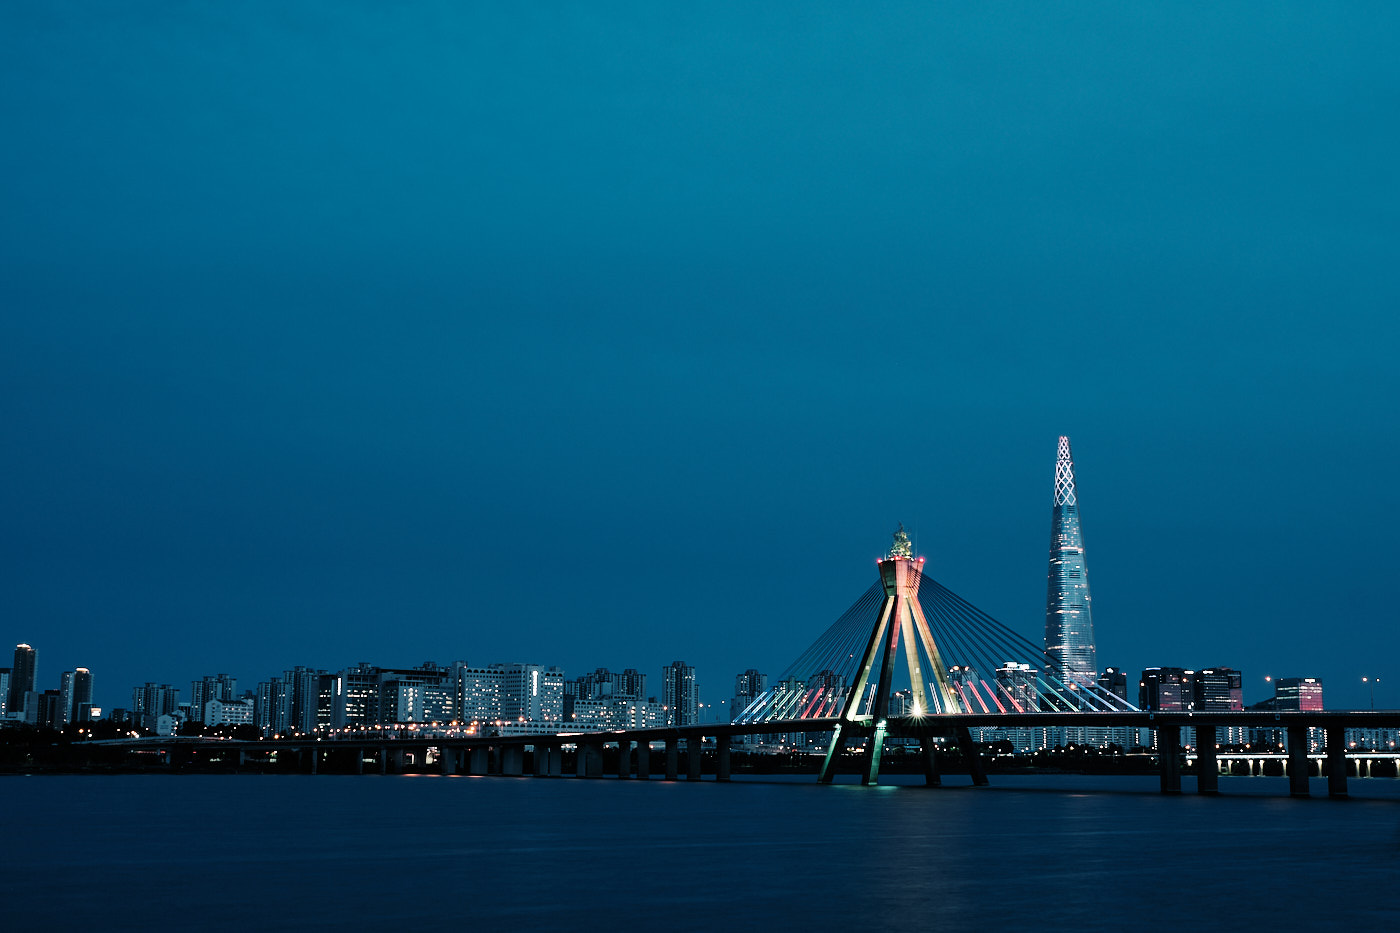 Olympic Bridge and Lotte Tower